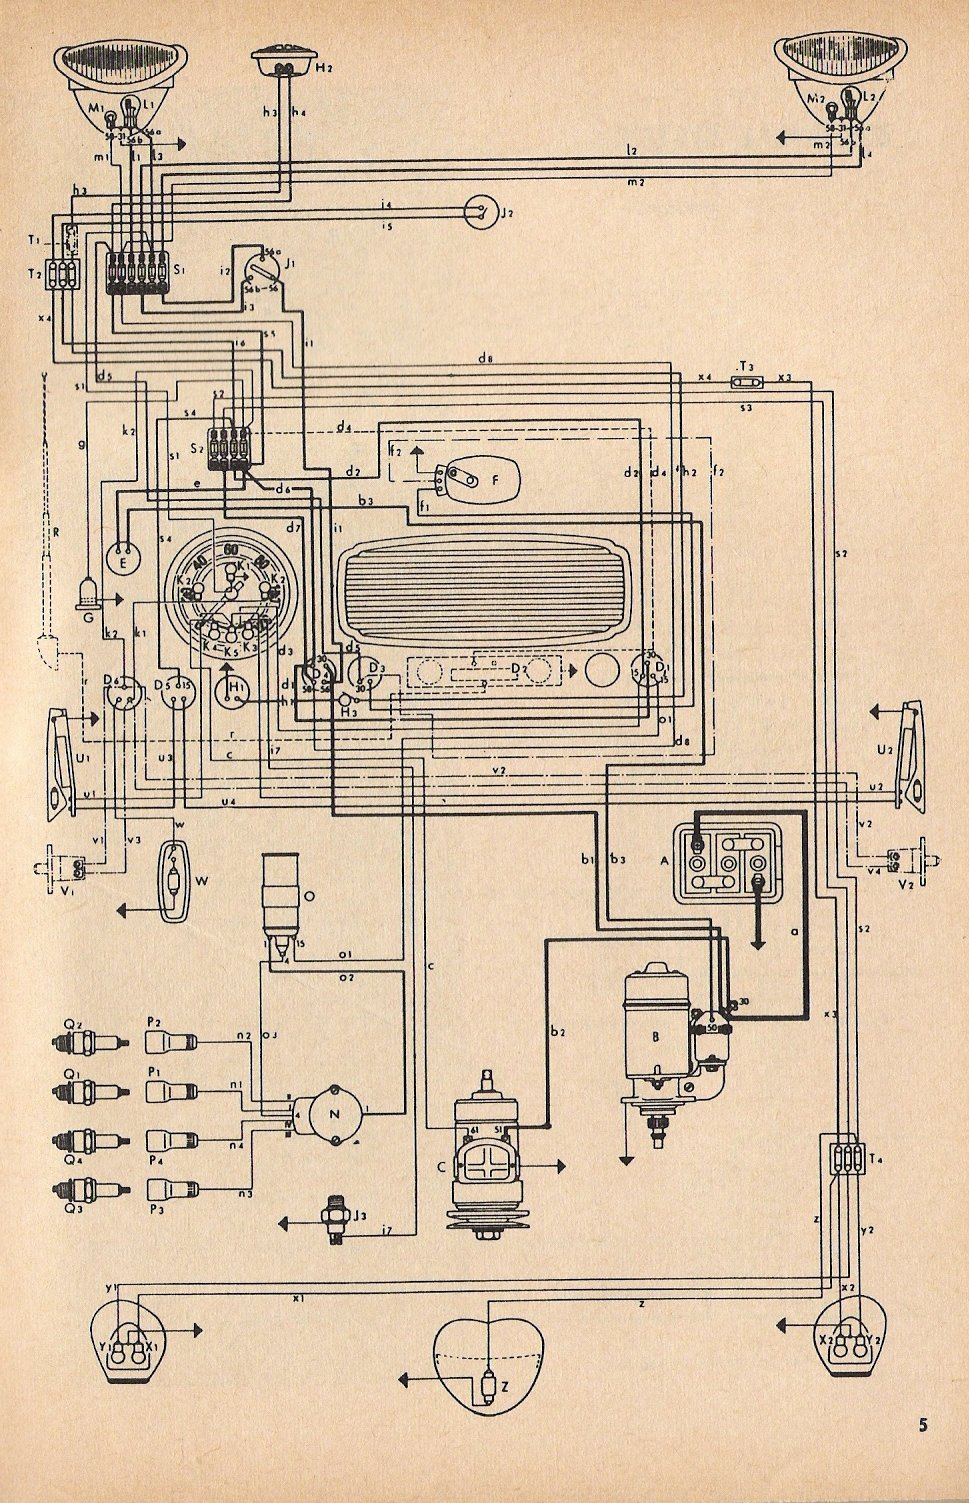 Type 1 Wiring Diagrams 1964 Volkswagen Ignition Diagram